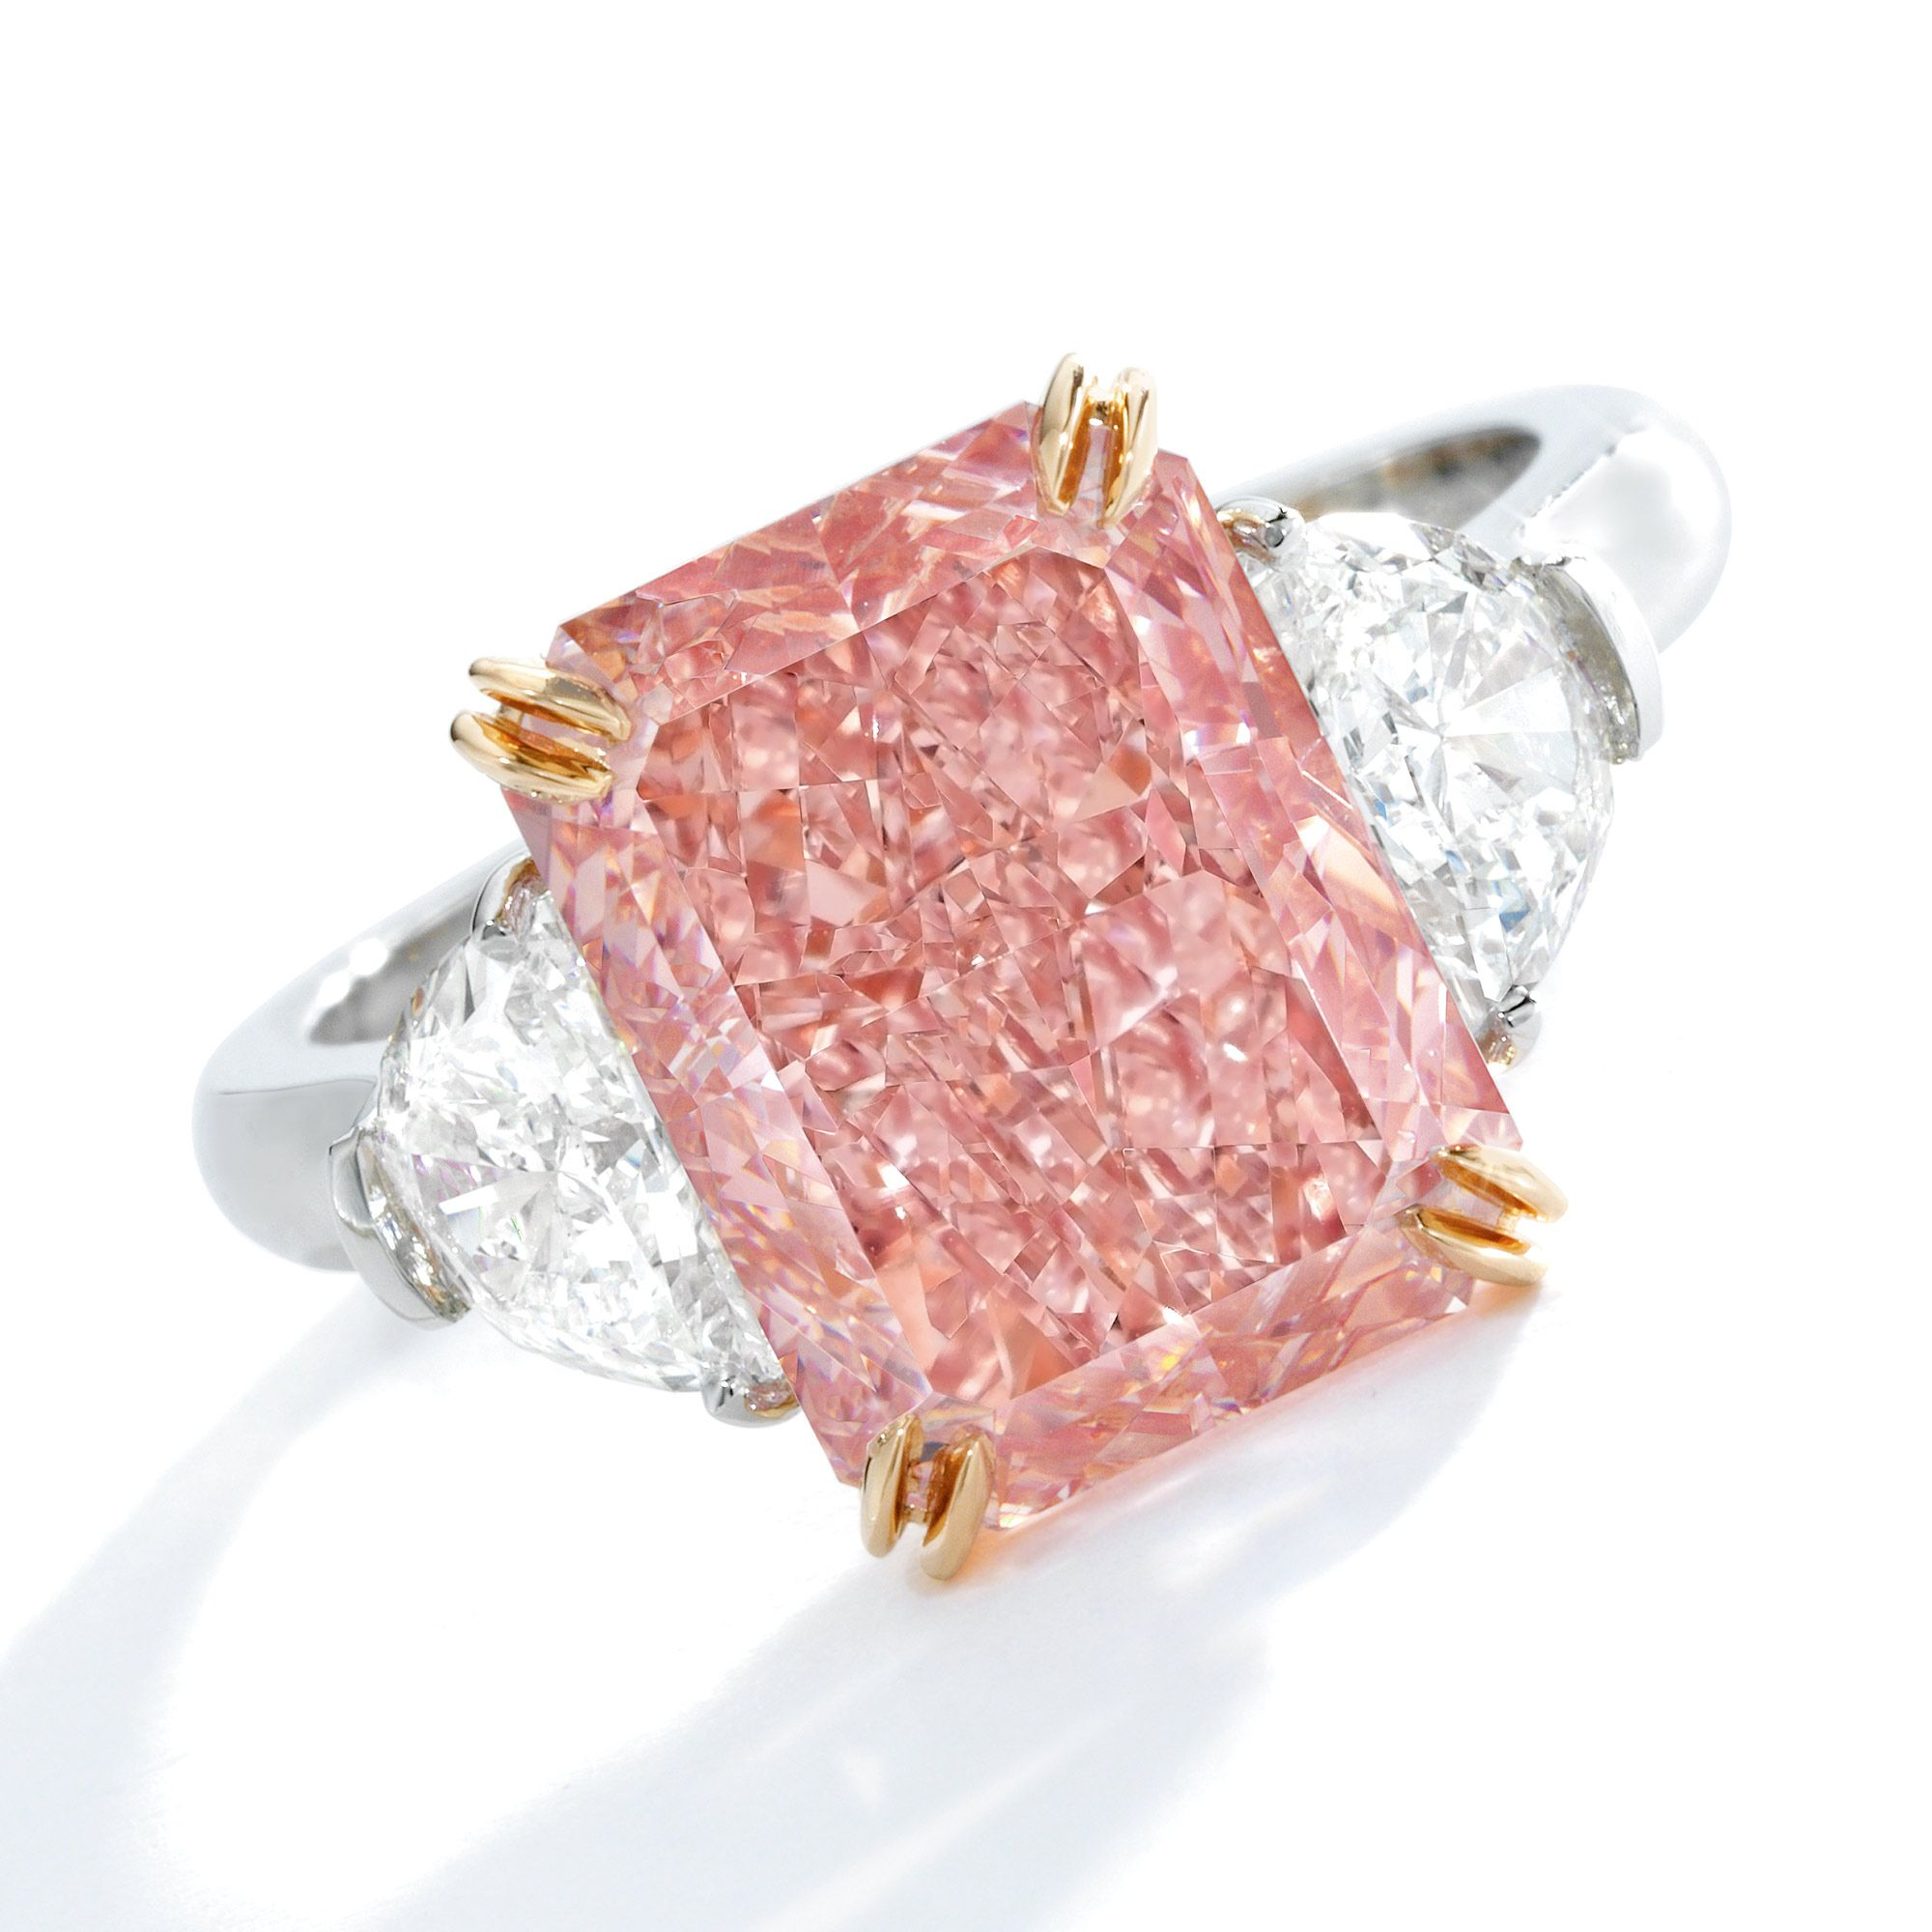 blue diamond pink natasha diamonds on ryder by guinness marmont pin ring rings